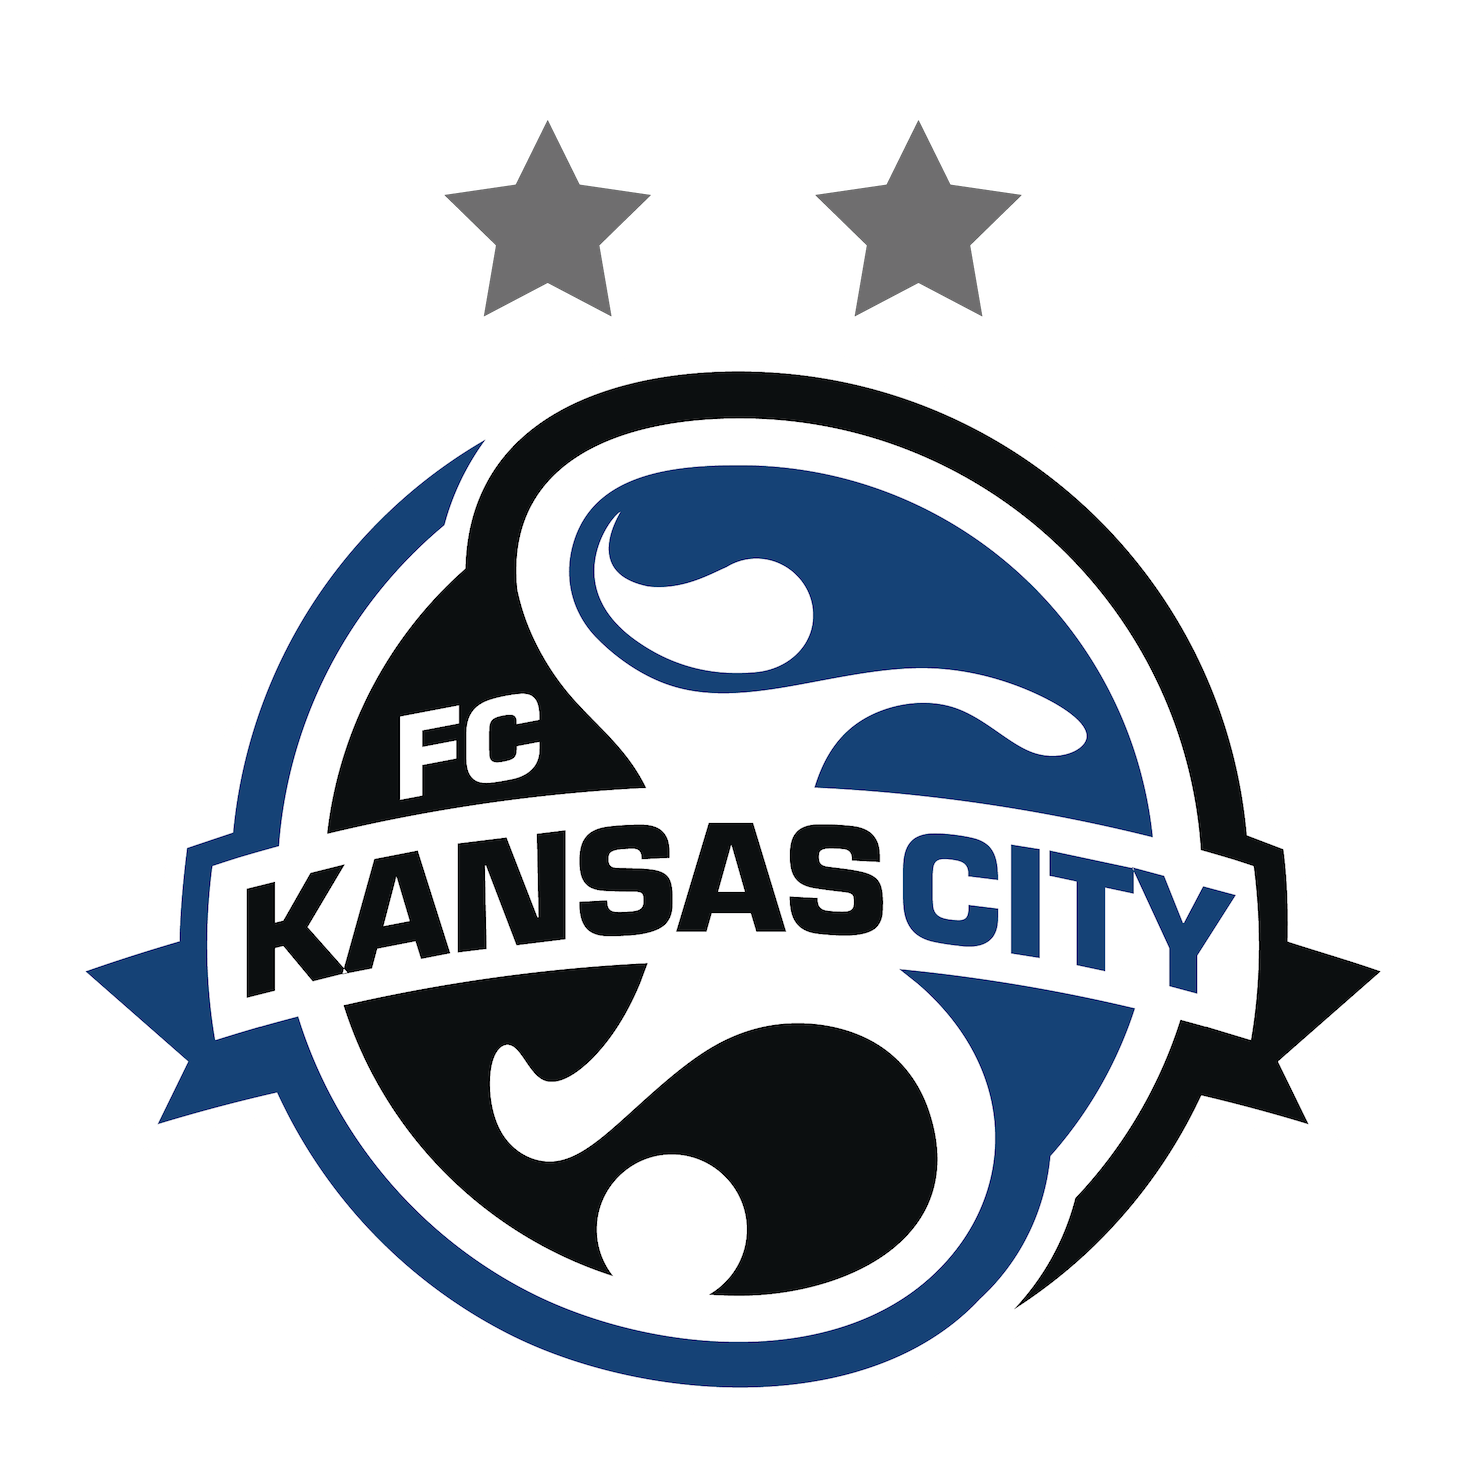 FC KANSAS CITY